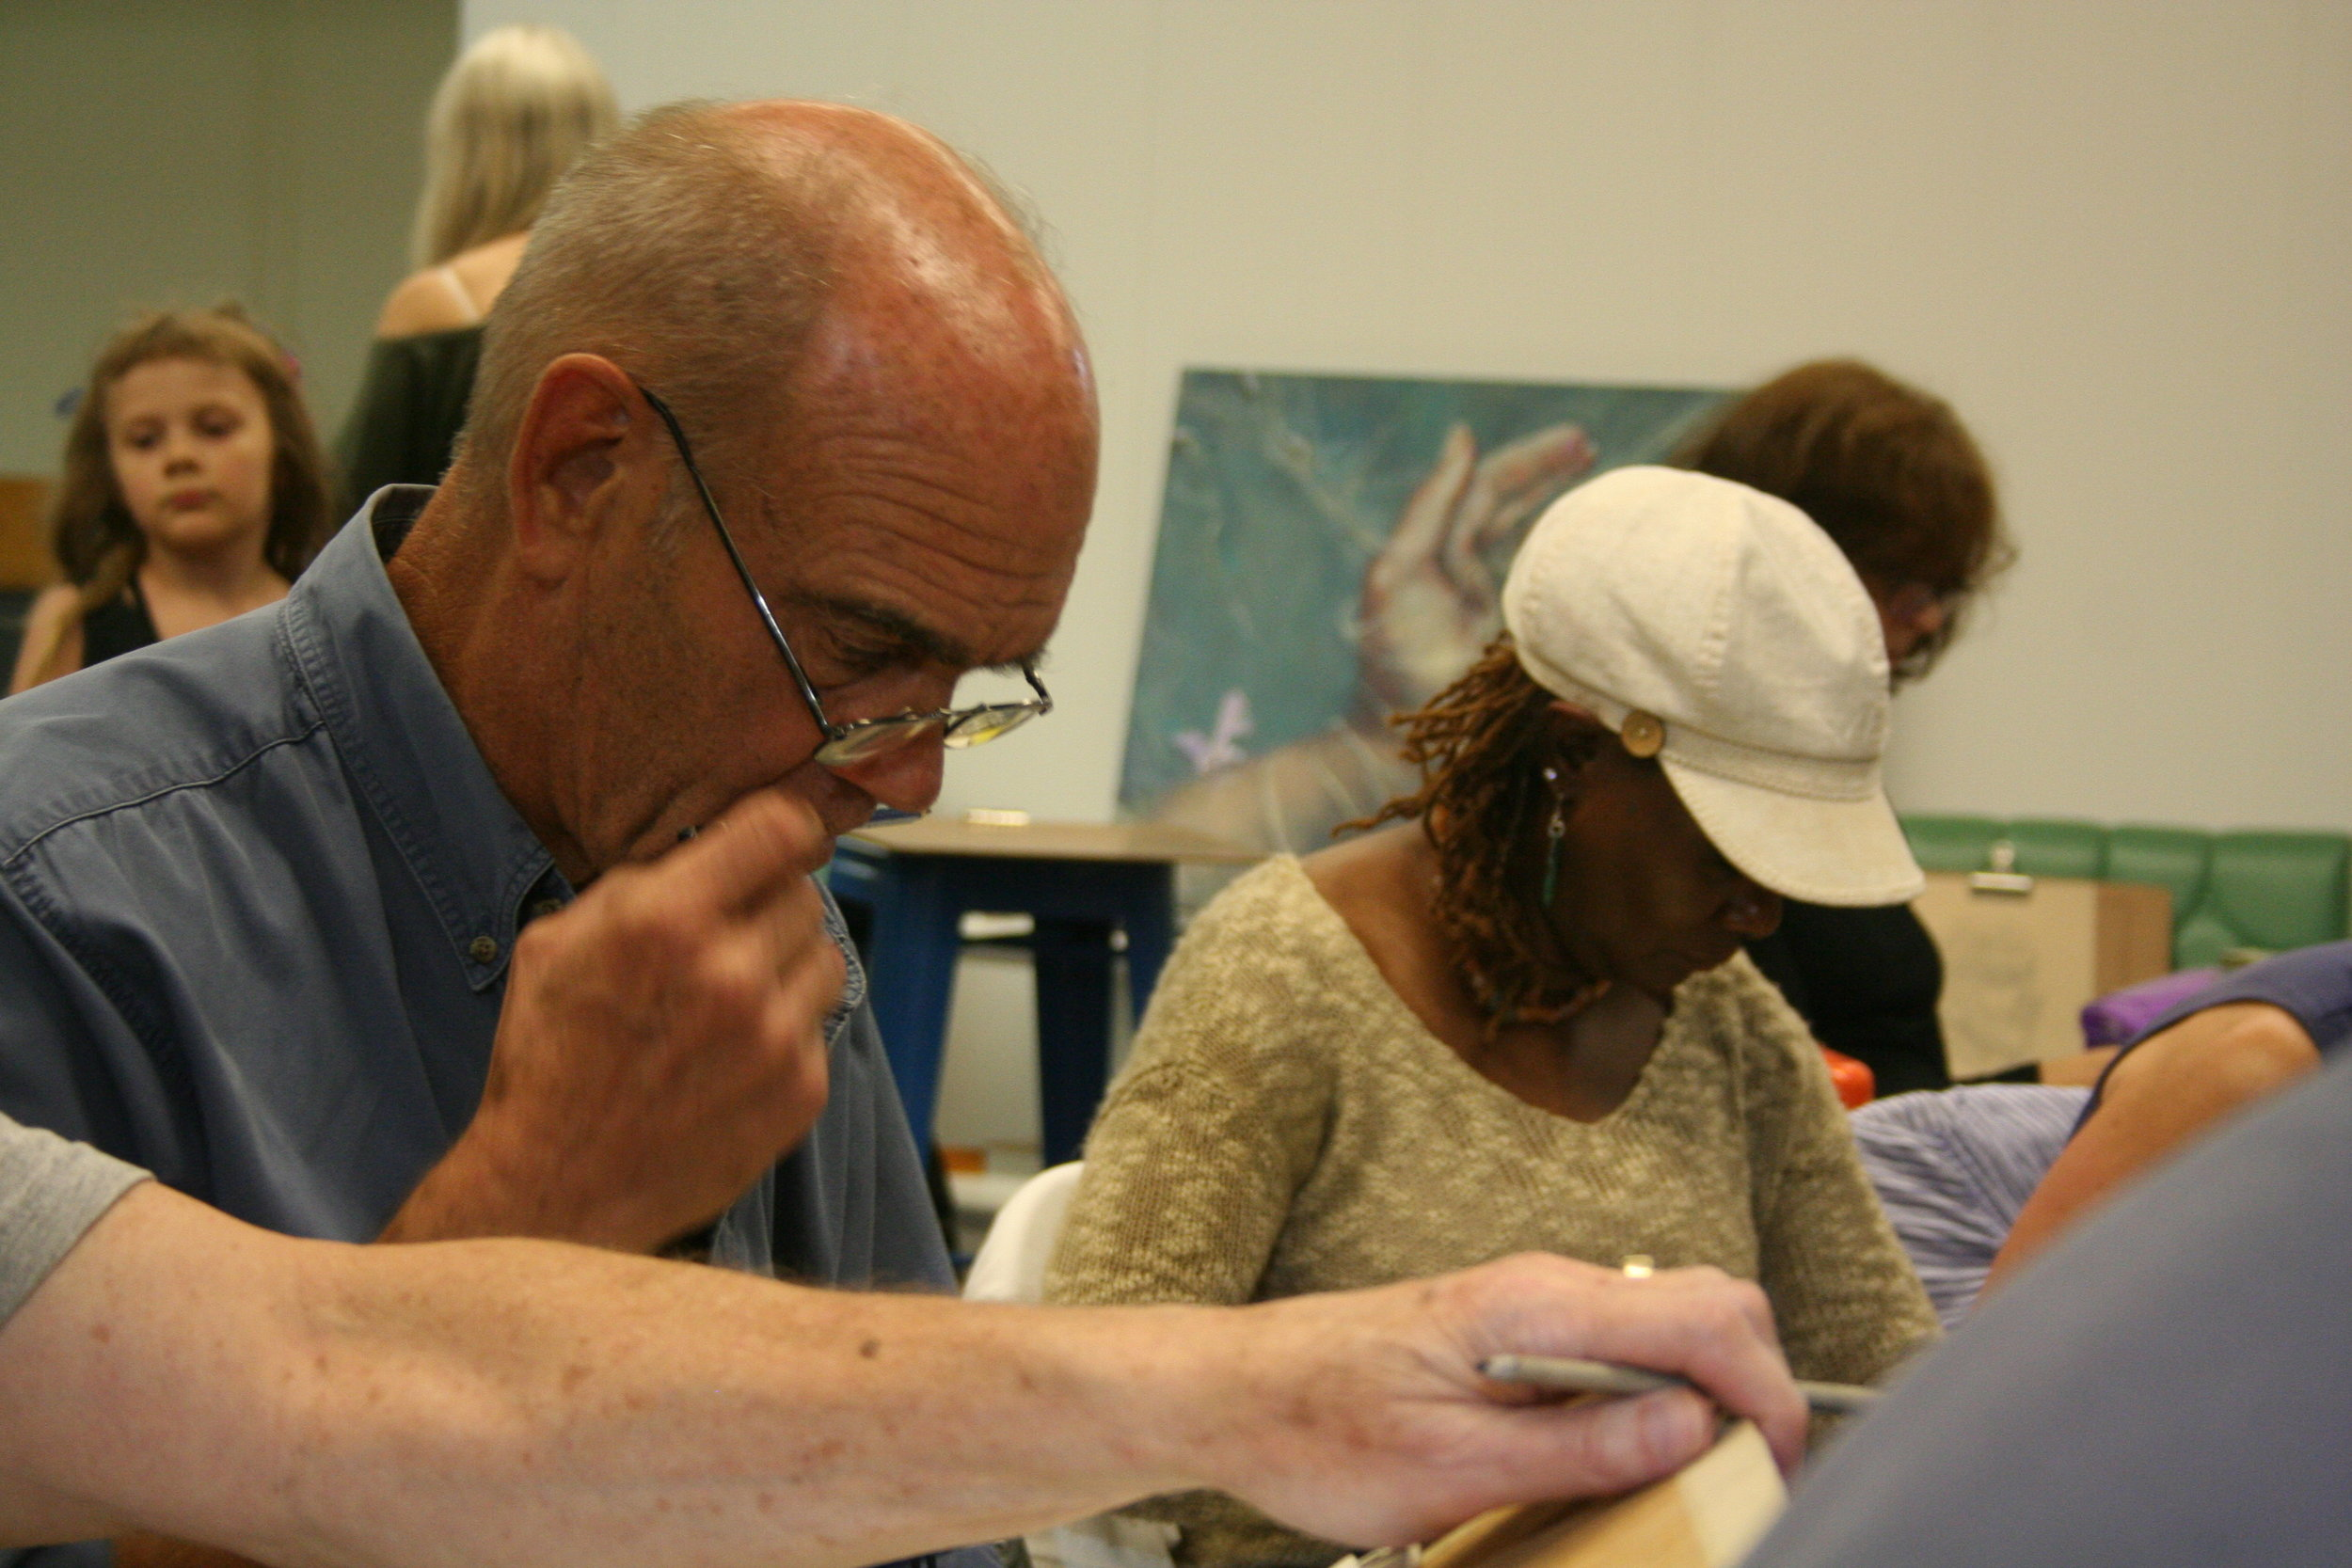 Bob Eggers and Linda Sue Morris working on their drawings.